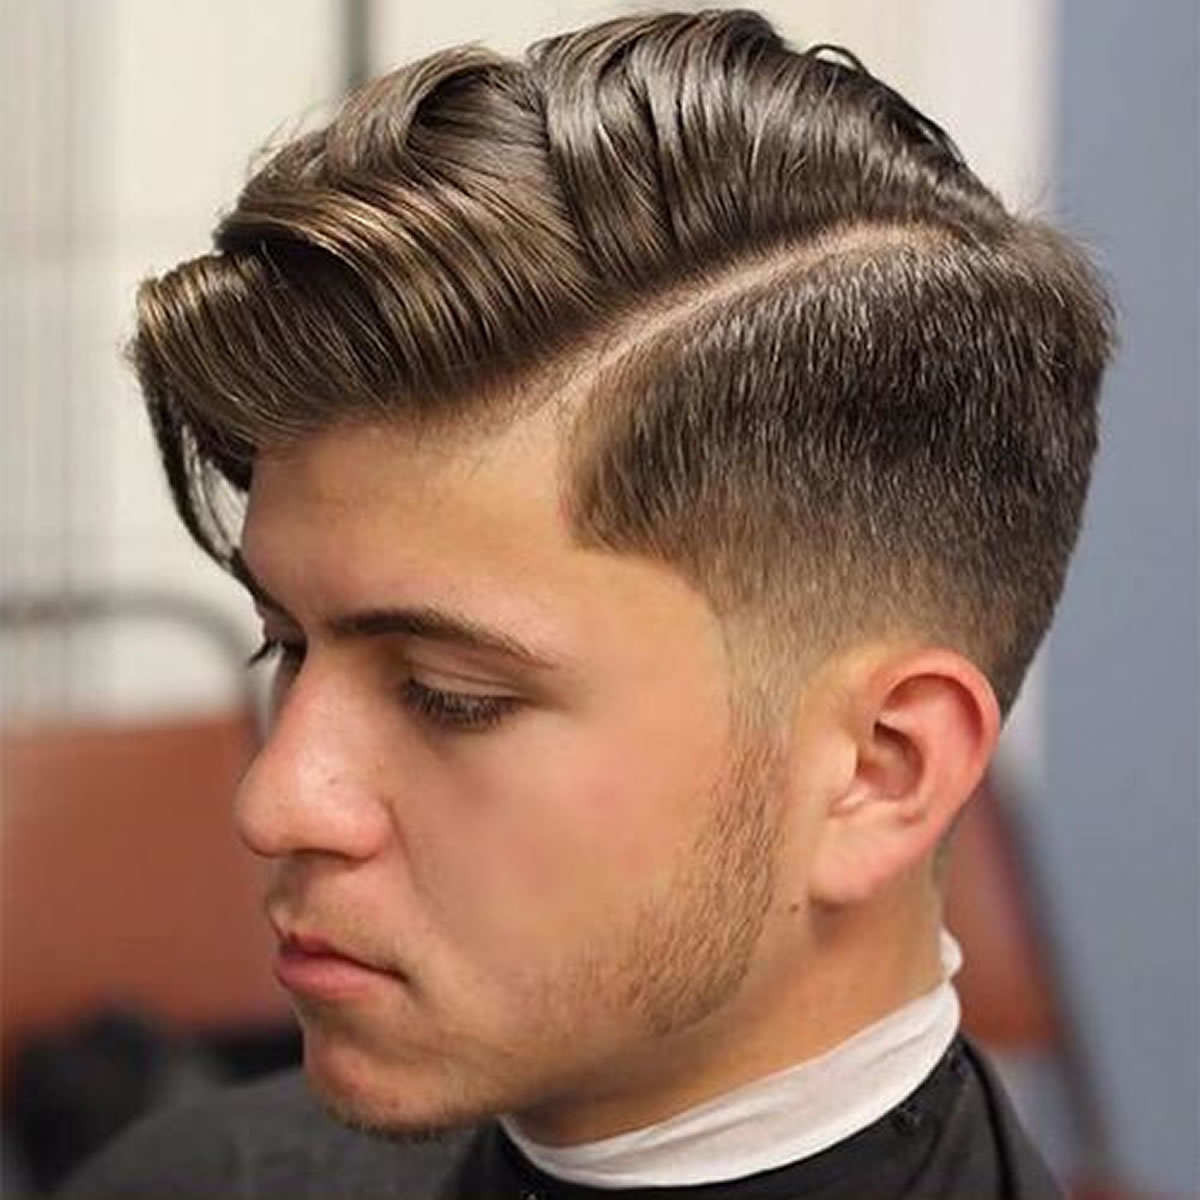 Best ideas about Popular Haircuts For Boys . Save or Pin The 2018 hairstyles for men Short and Cuts Hairstyles Now.